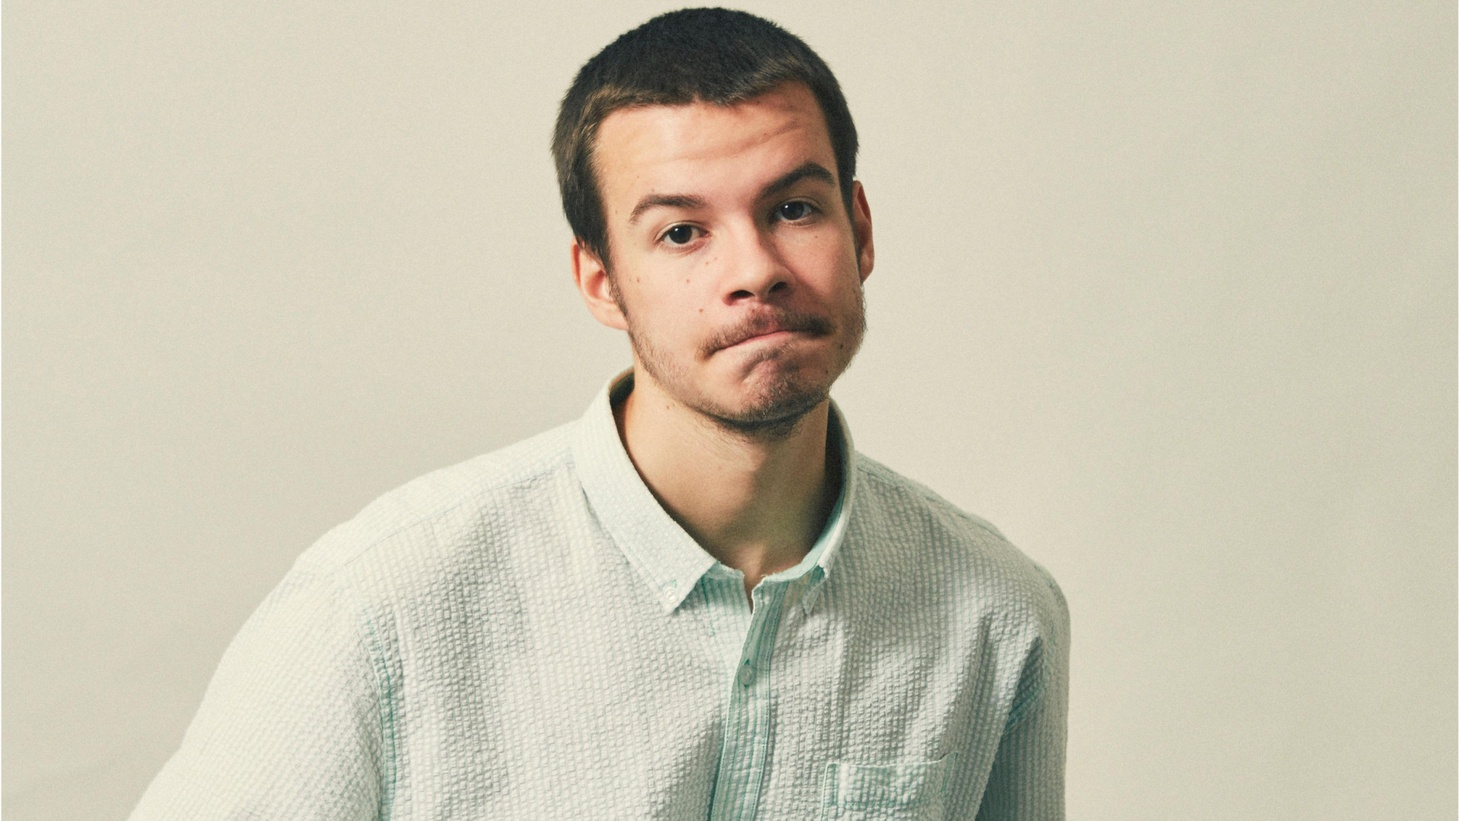 Rex Orange County is not from Southern California. In fact, it's the moniker of 20-year-old UK musician Alex O'Connor, whose star has risen swiftly on the strength of the insanely catchy single Loving Is Easy.